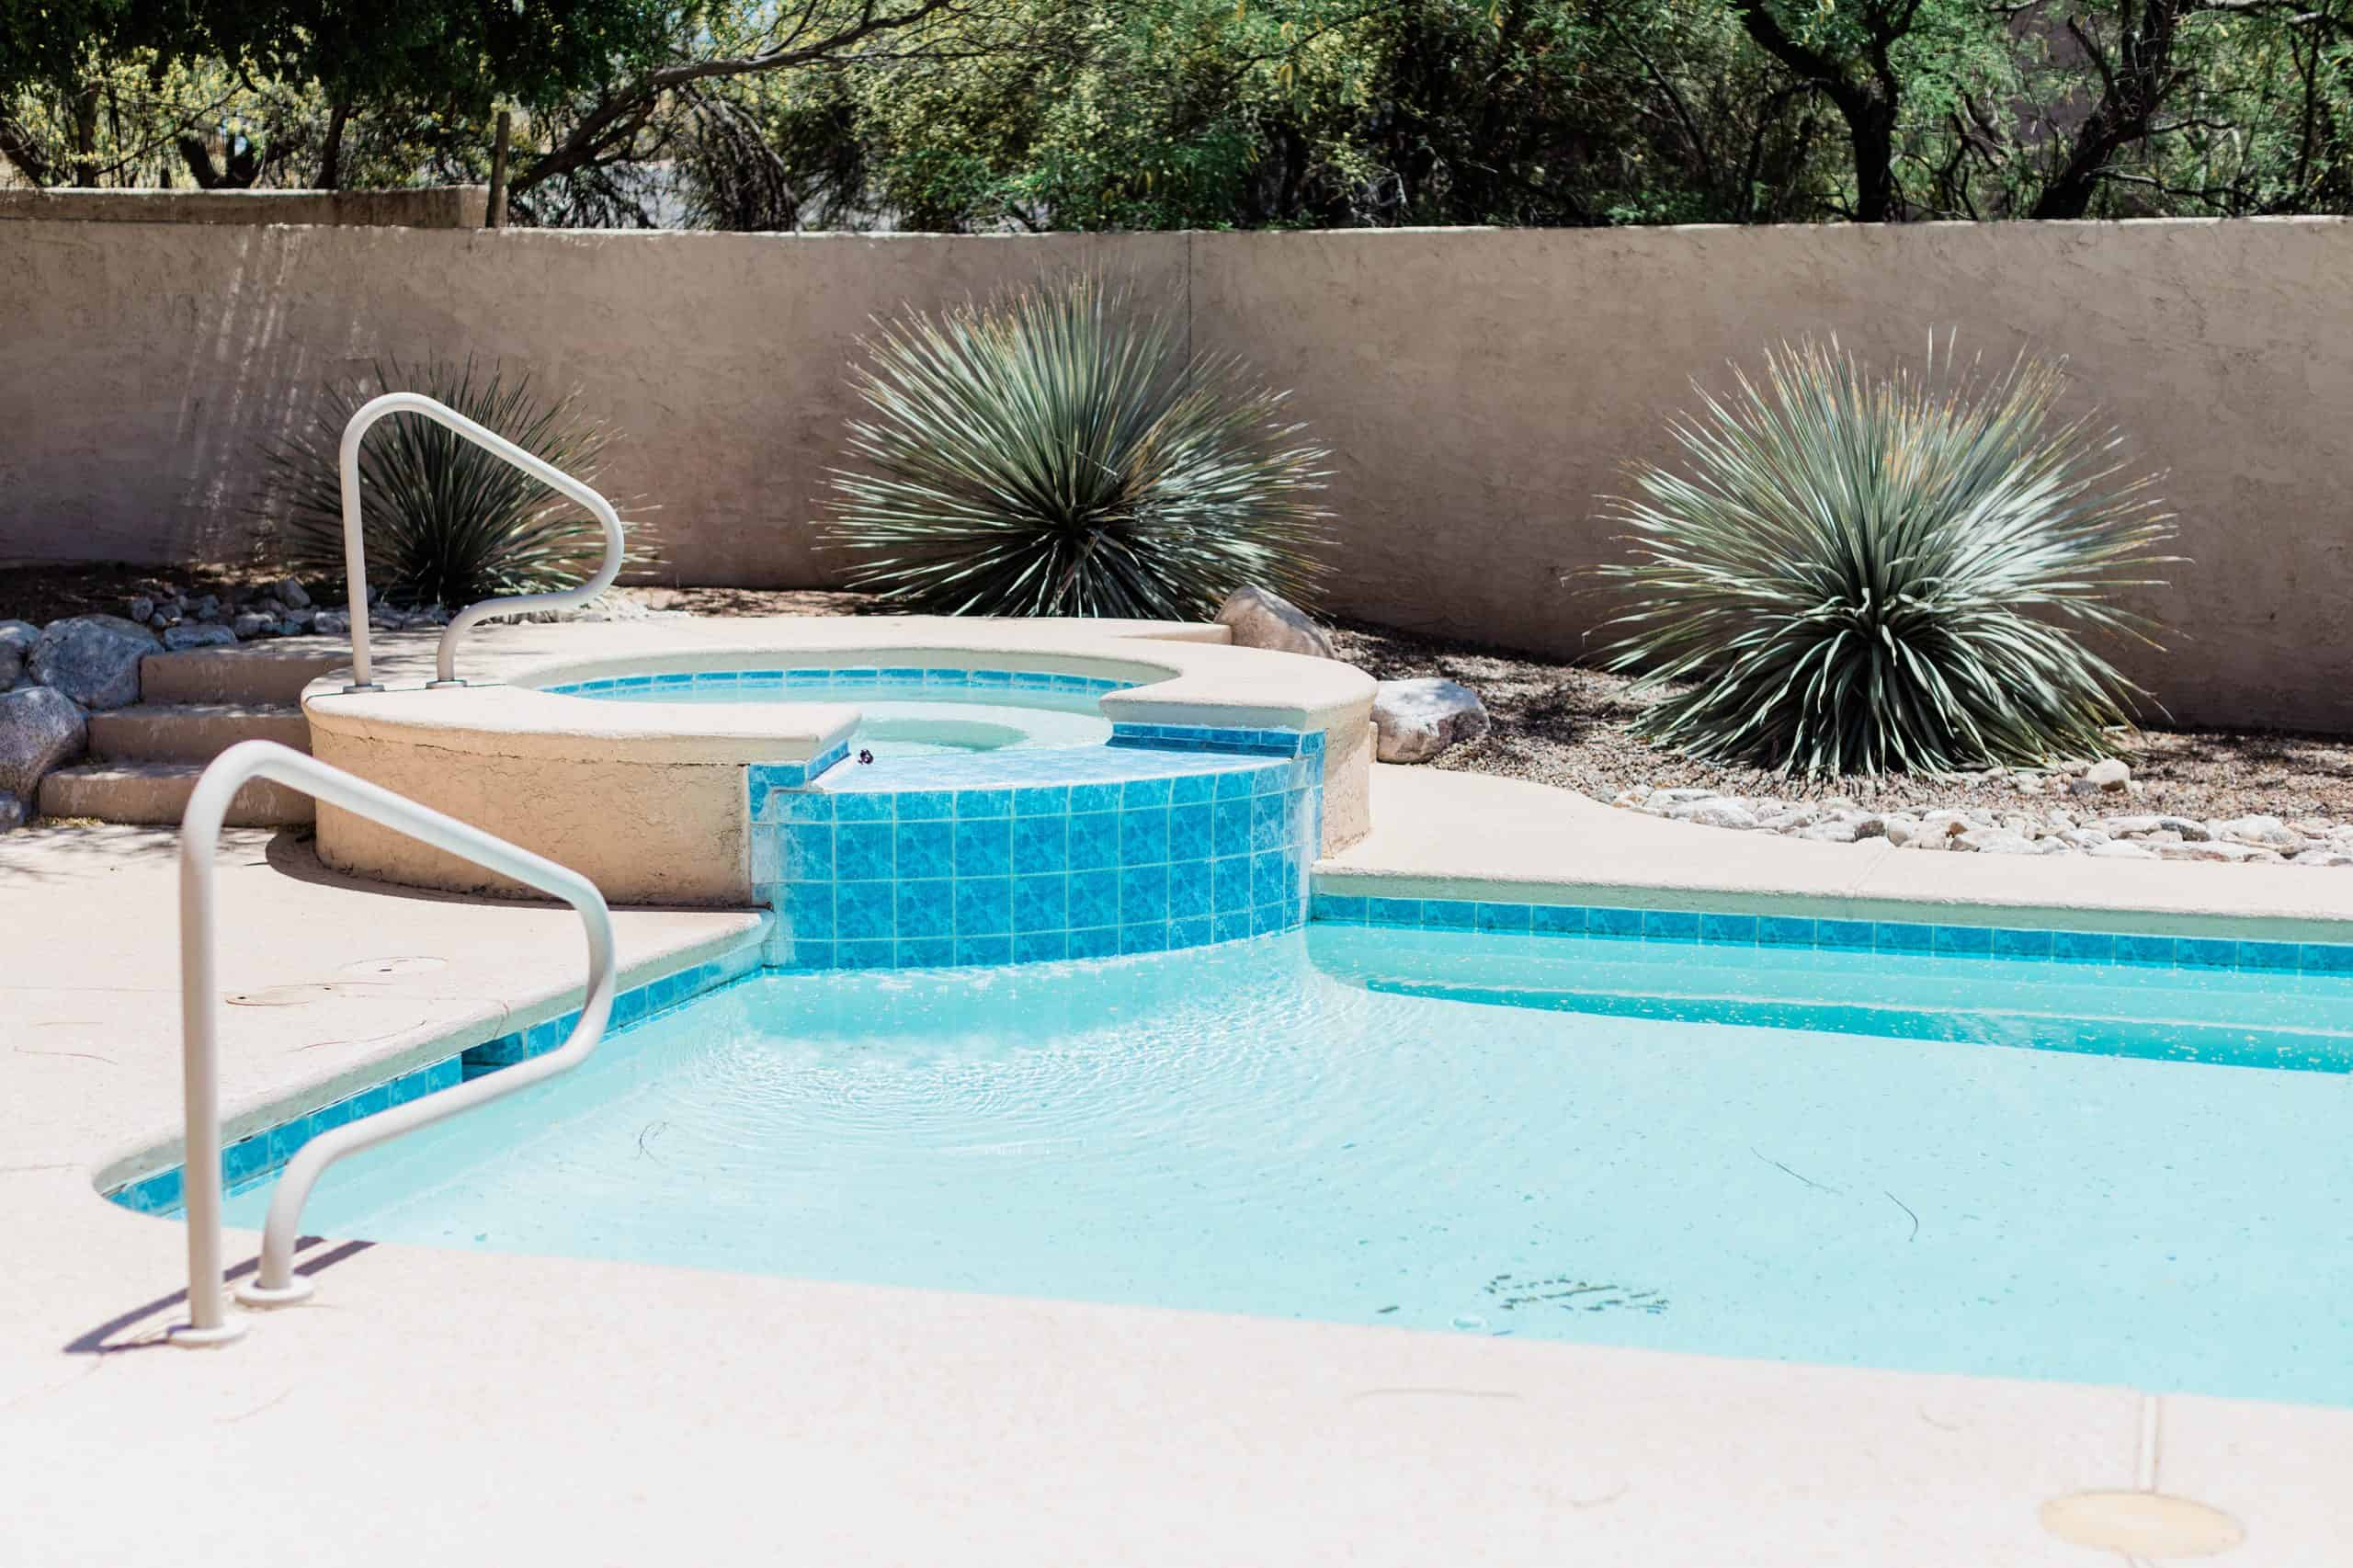 Spend some time poolside now that the weather's warm to have the best summer!